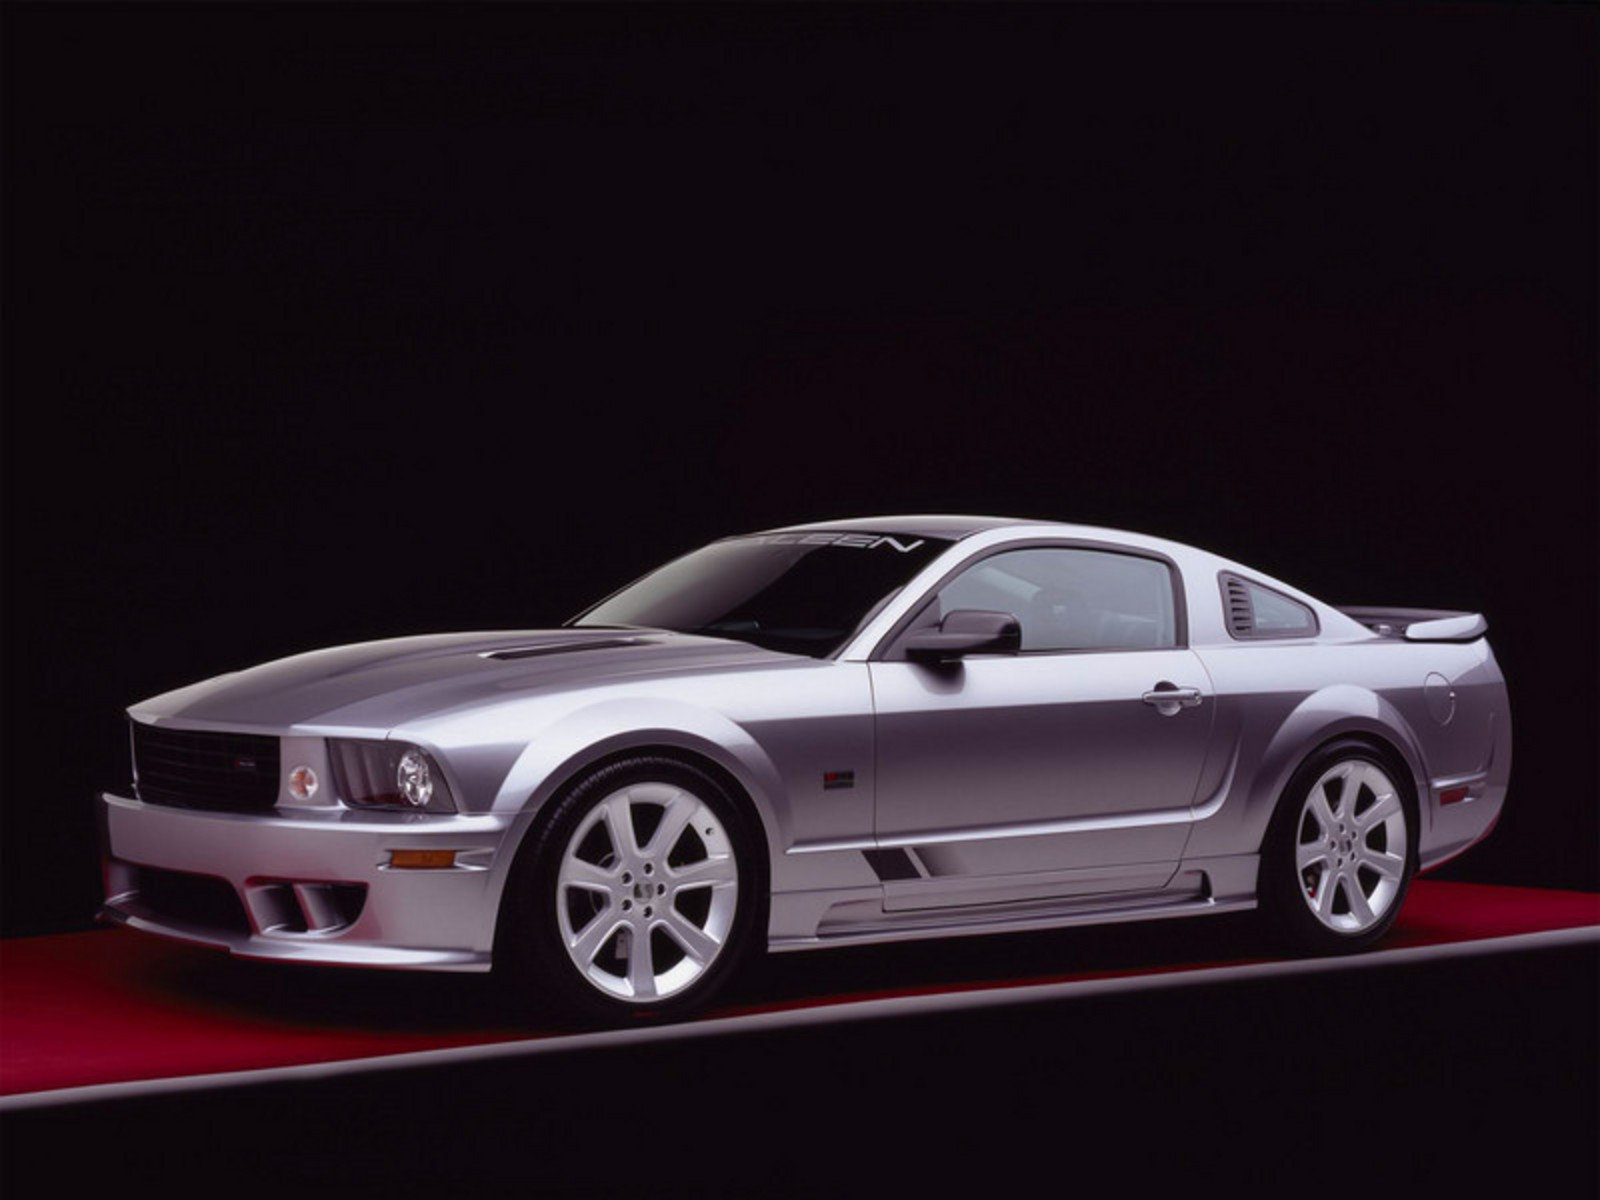 2005 Saleen S281 Mustang Picture 49508 Car Review